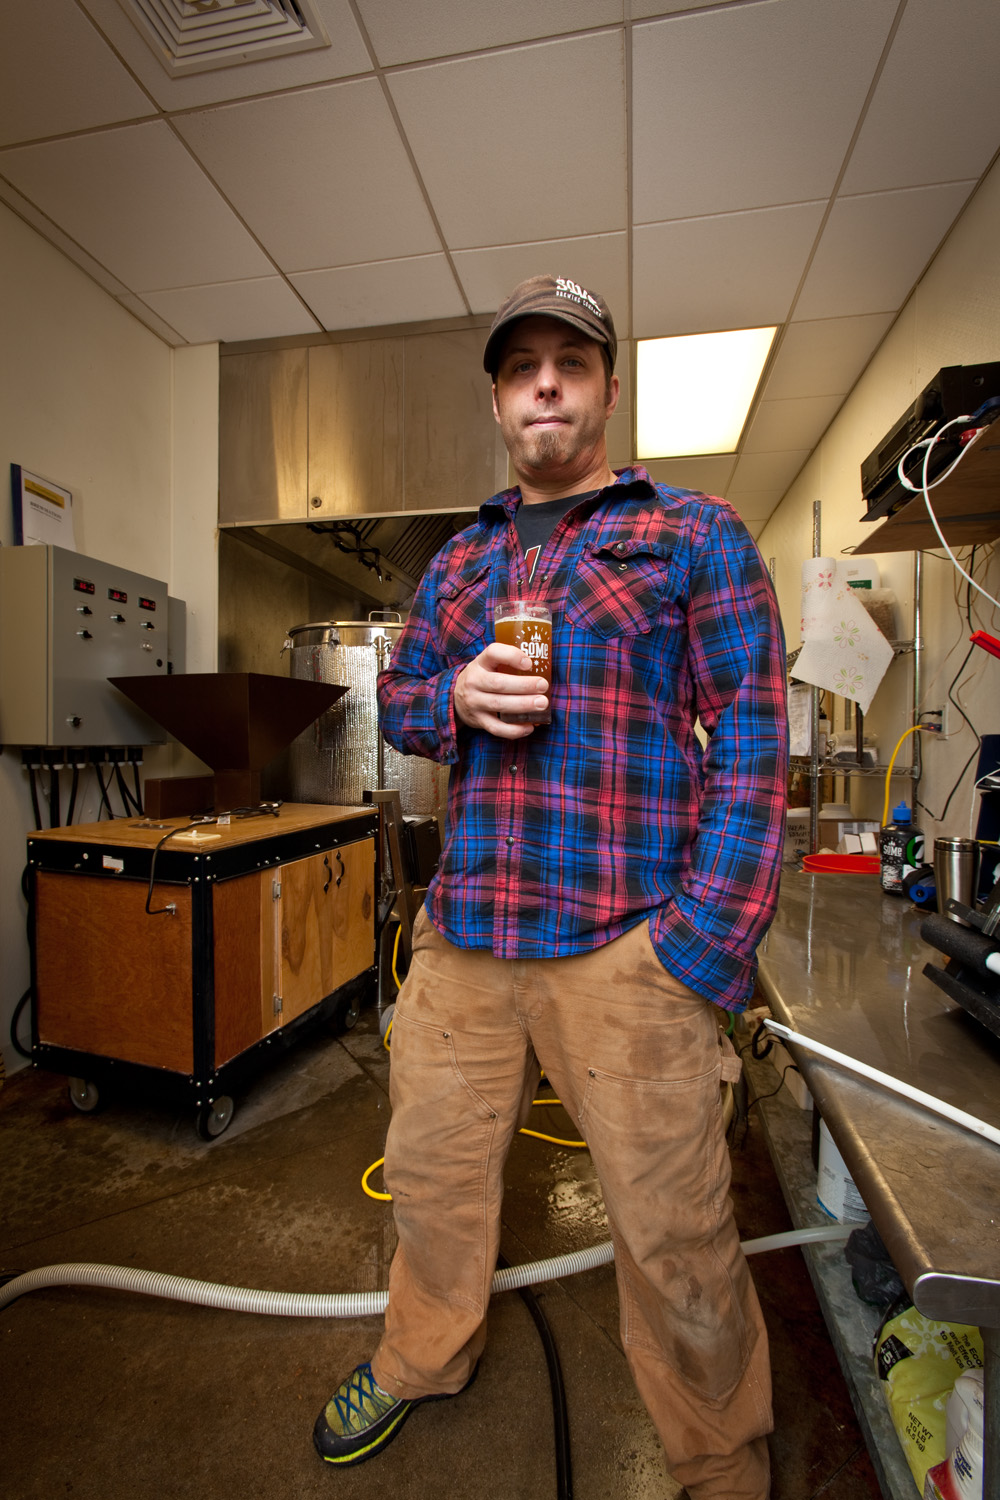 Dave Rowland, Brewmaster at SoMe Brewing Co. in York, ME Established in 2013